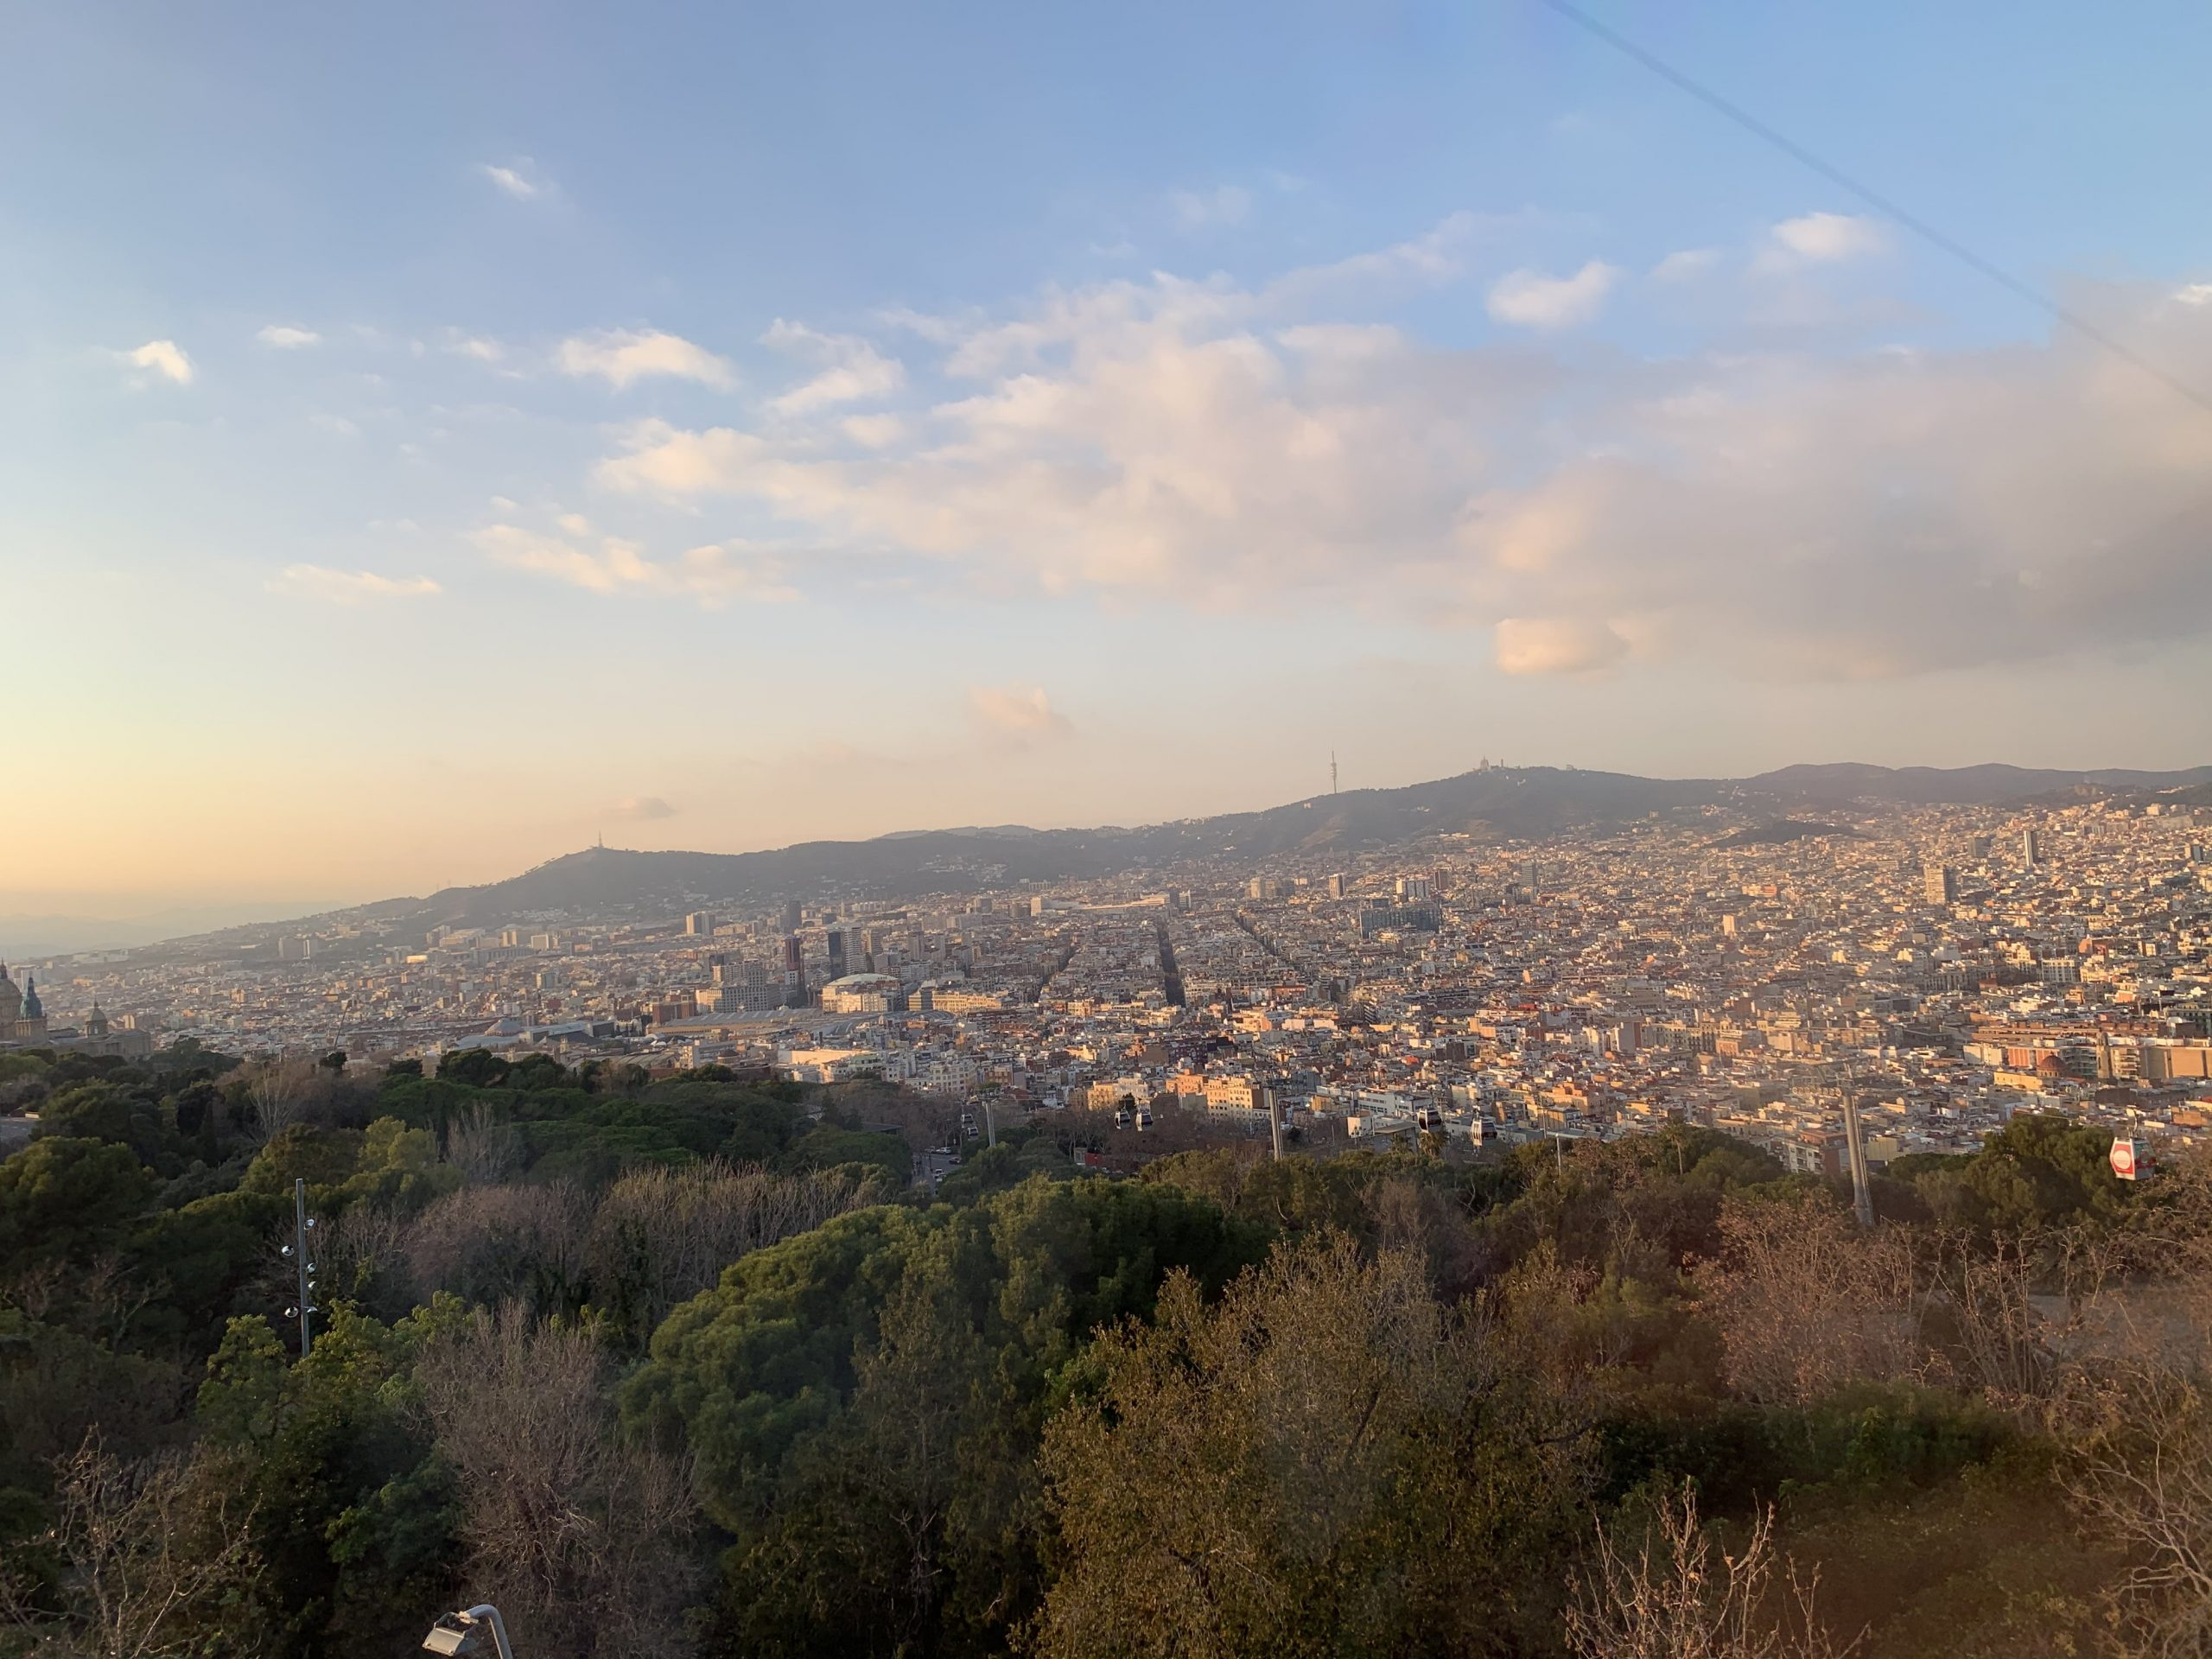 Panoramic view of Barcelona from the top of a mountain